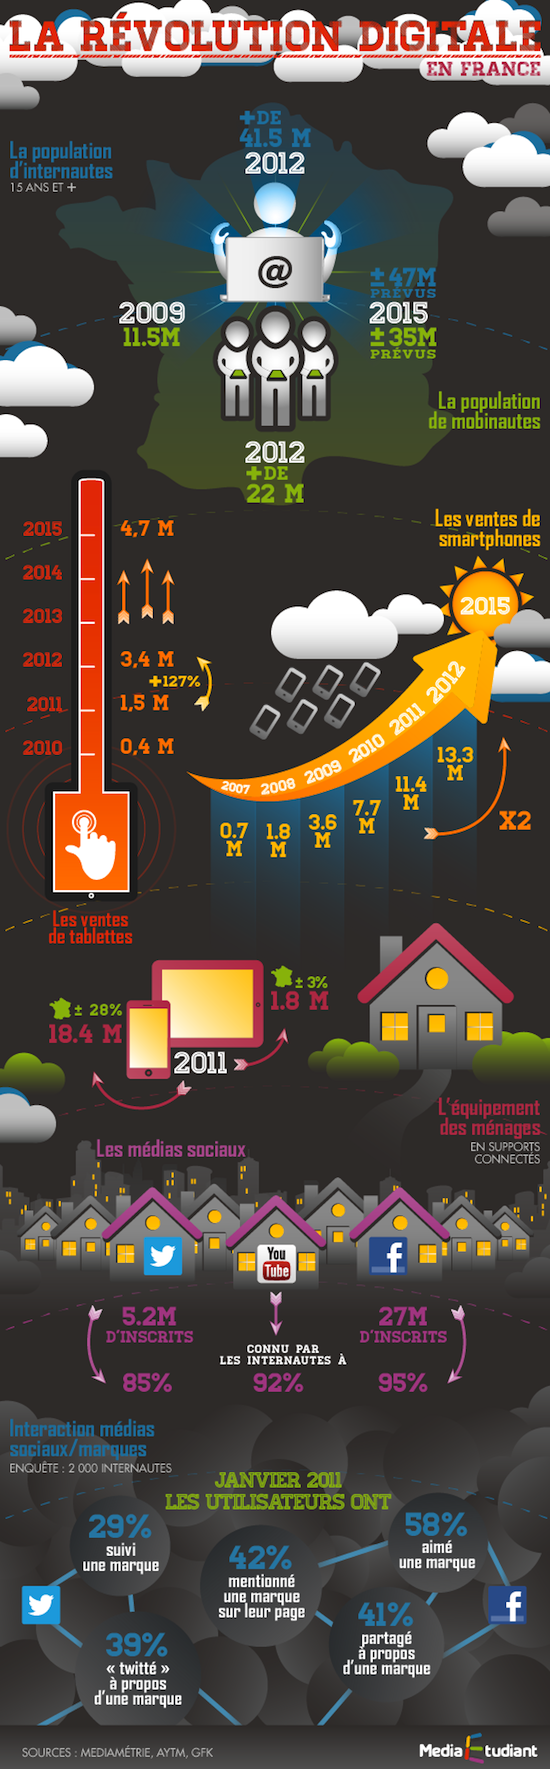 semaine_du_digital_infographies_revolutiondigitale_v2